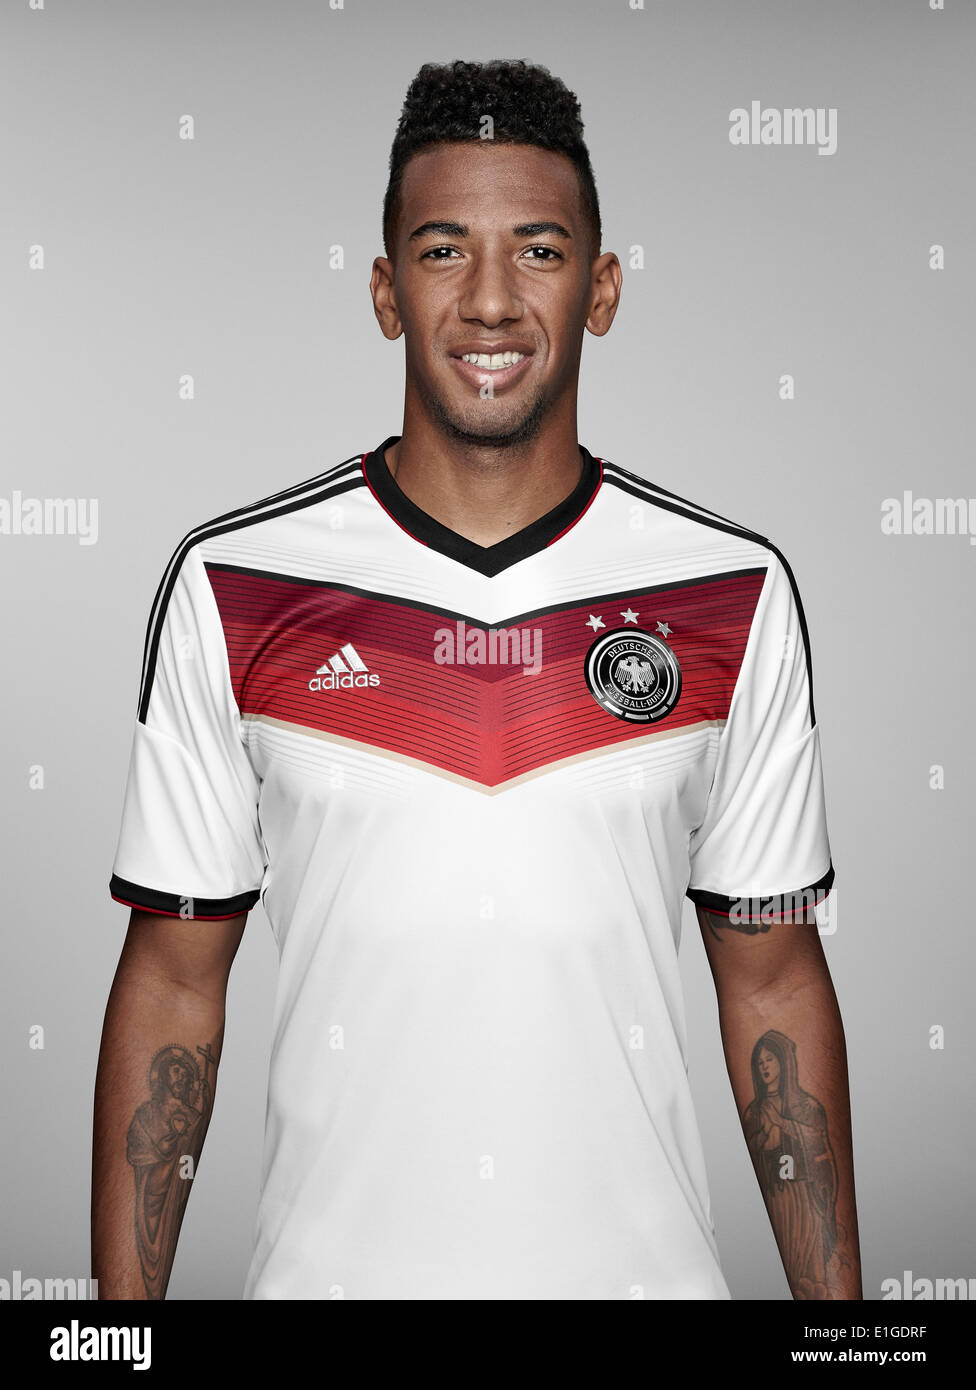 FIFA World Cup 2014 - photocall Team Germany, 24 May 2014 in Passeier, Italy: Jerome Boateng. Photo credit: Bongarts/Getty Images/German Football Association/dpa (editorial use only) - Stock Image